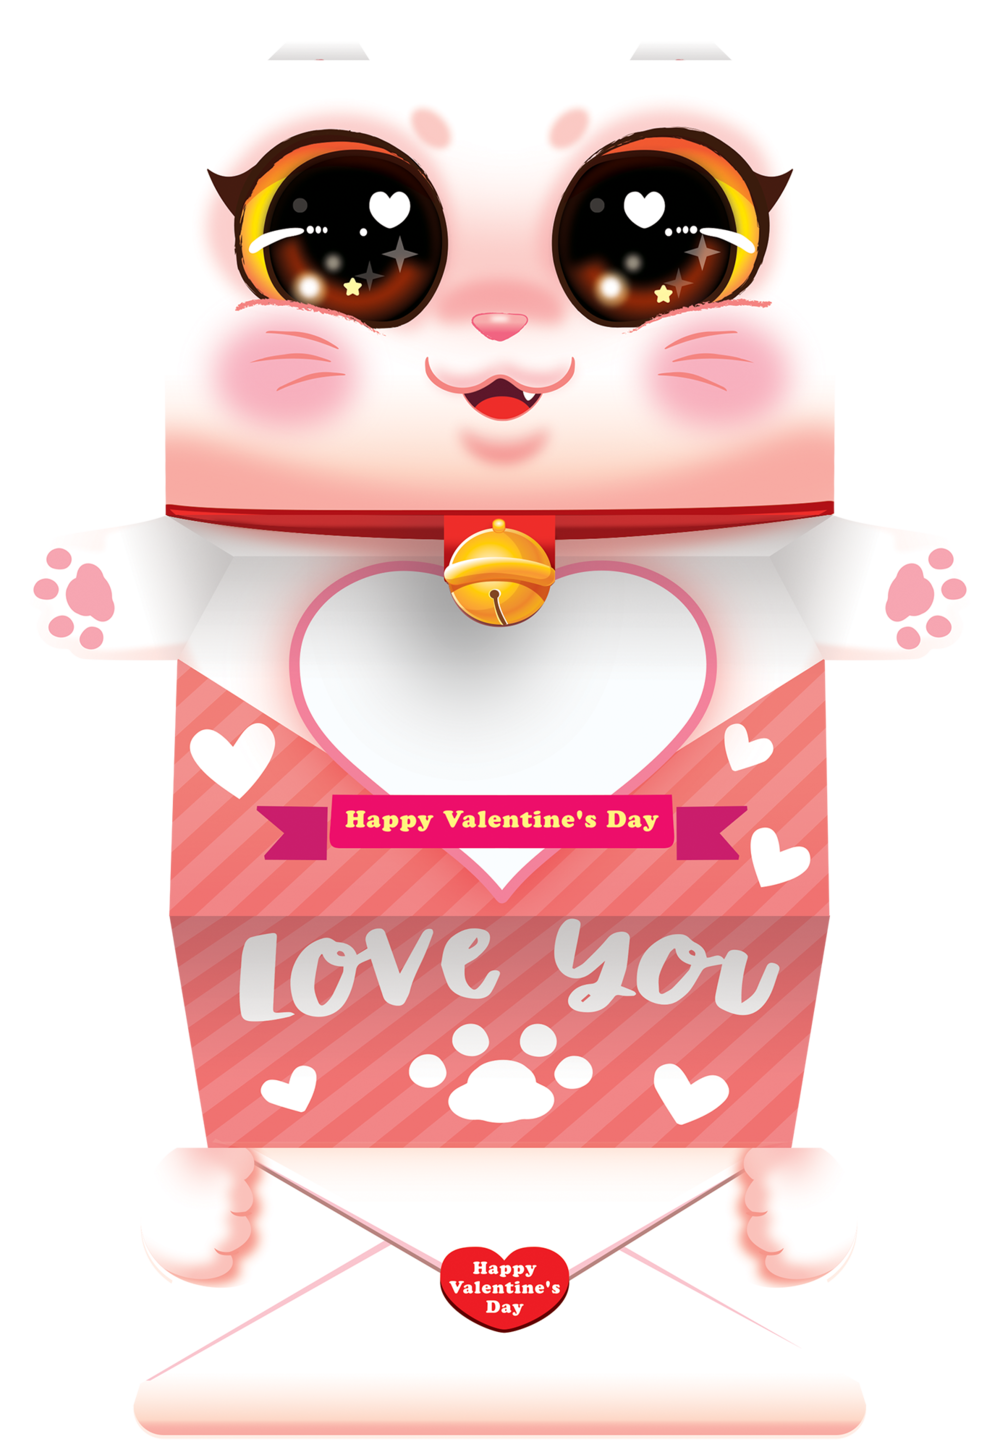 KittyPaw_Valentines_3D_BoxOPENED_RGB.png